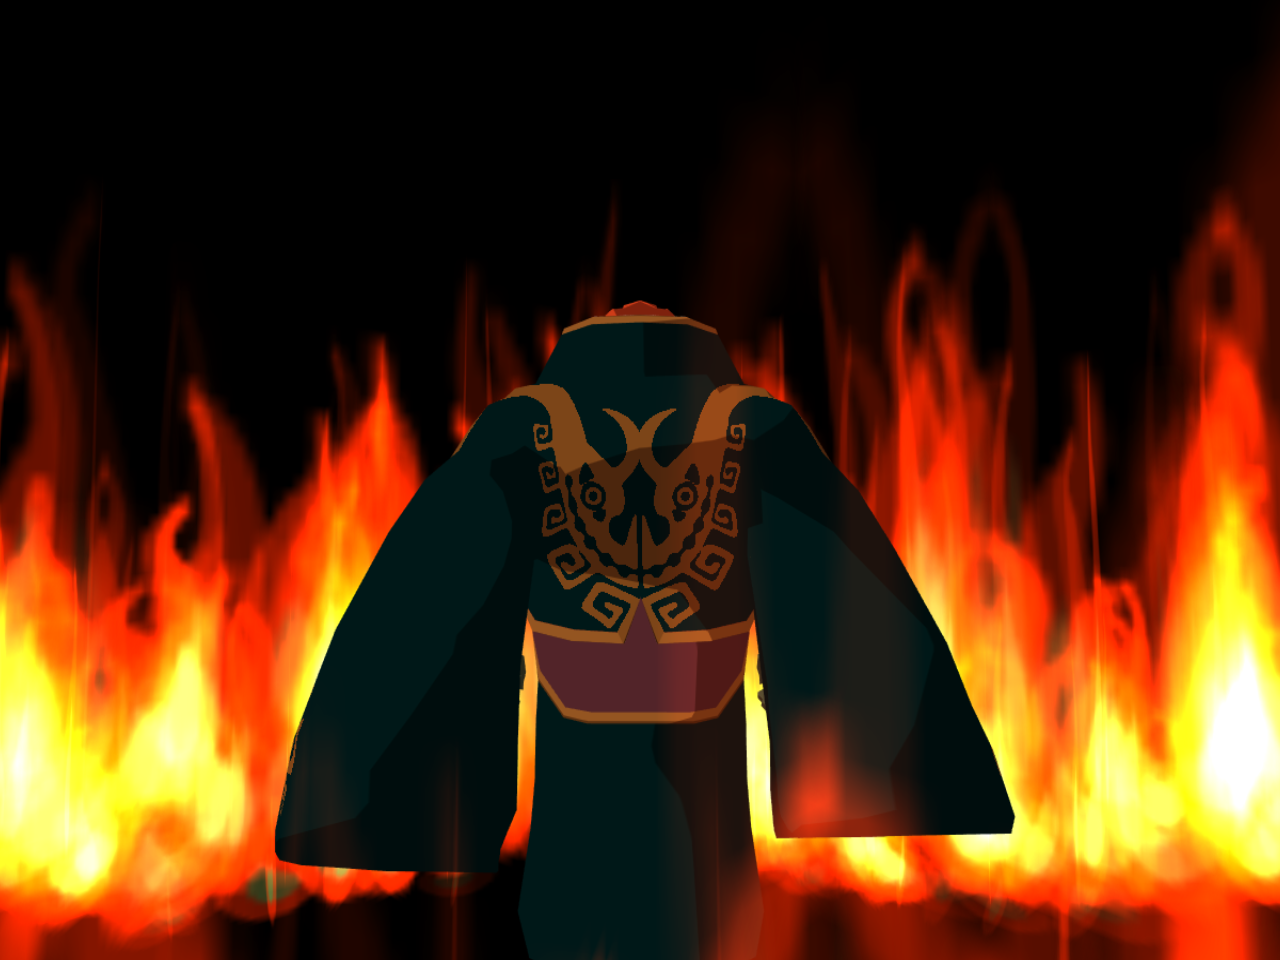 (But you must use the Fire for good!)